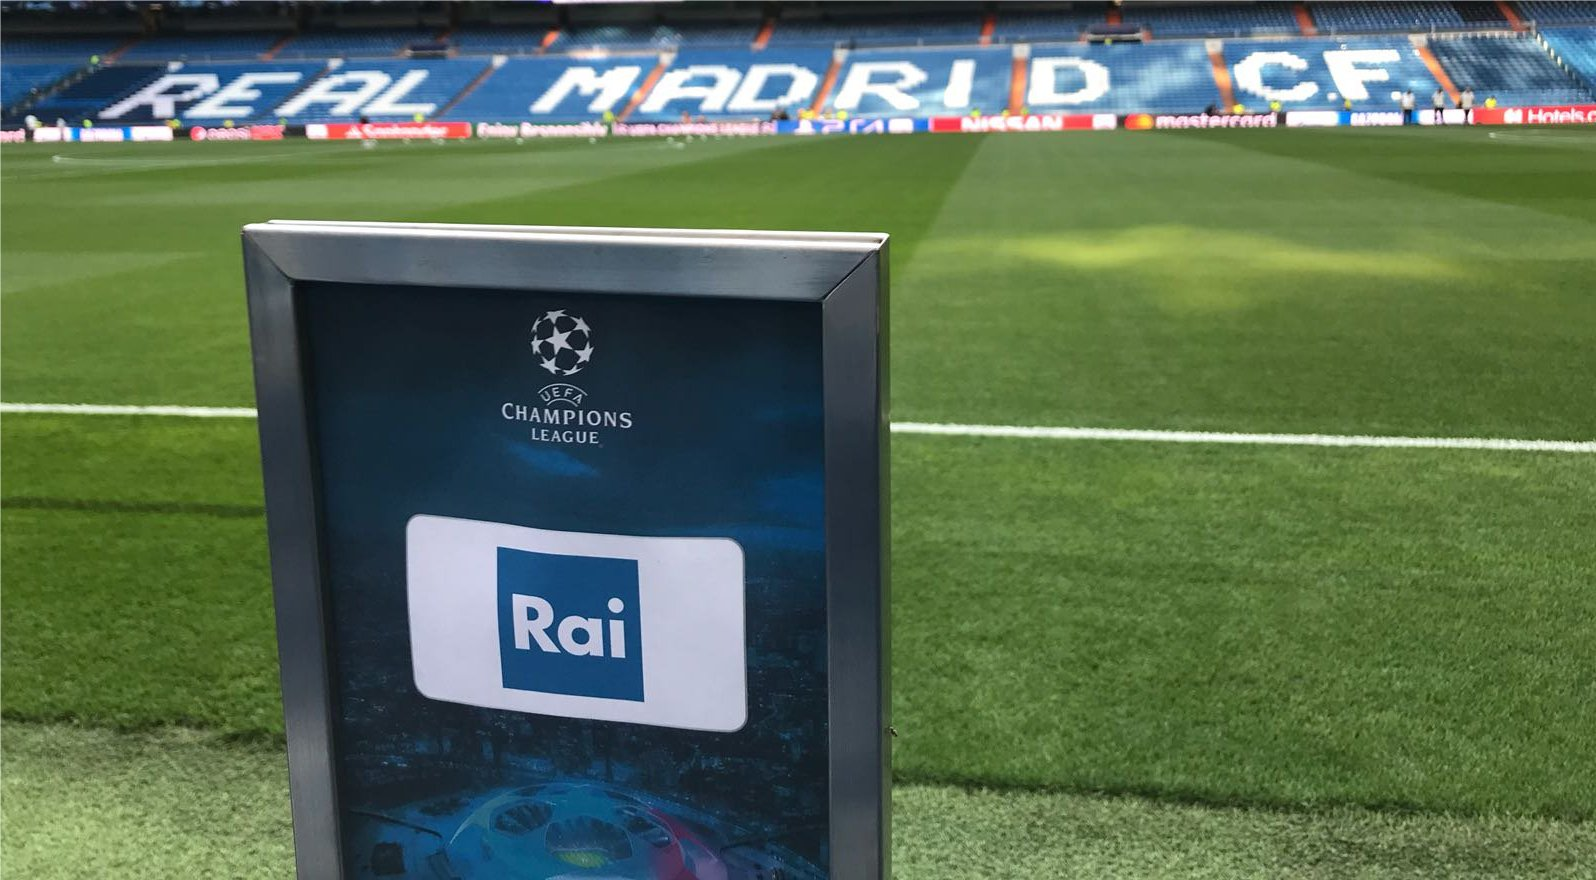 Rai, a giorni decisione tribunale su caso Sky - Champions League